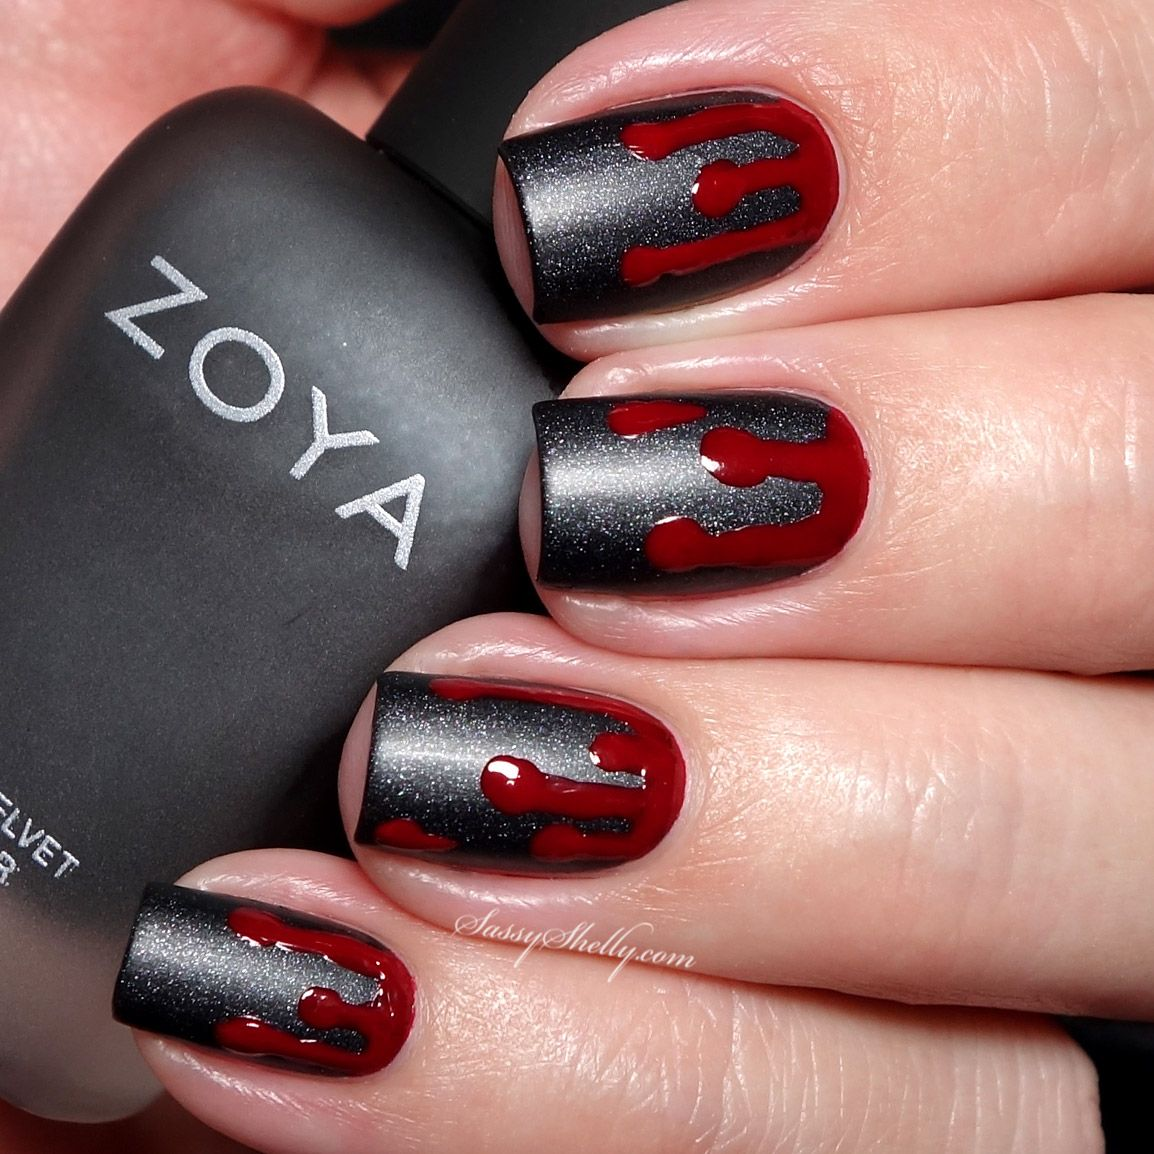 Halloween nail art blood drip manicure with zoya dovima matte halloween nail art blood drip manicure with zoya dovima matte sassy shelly prinsesfo Gallery